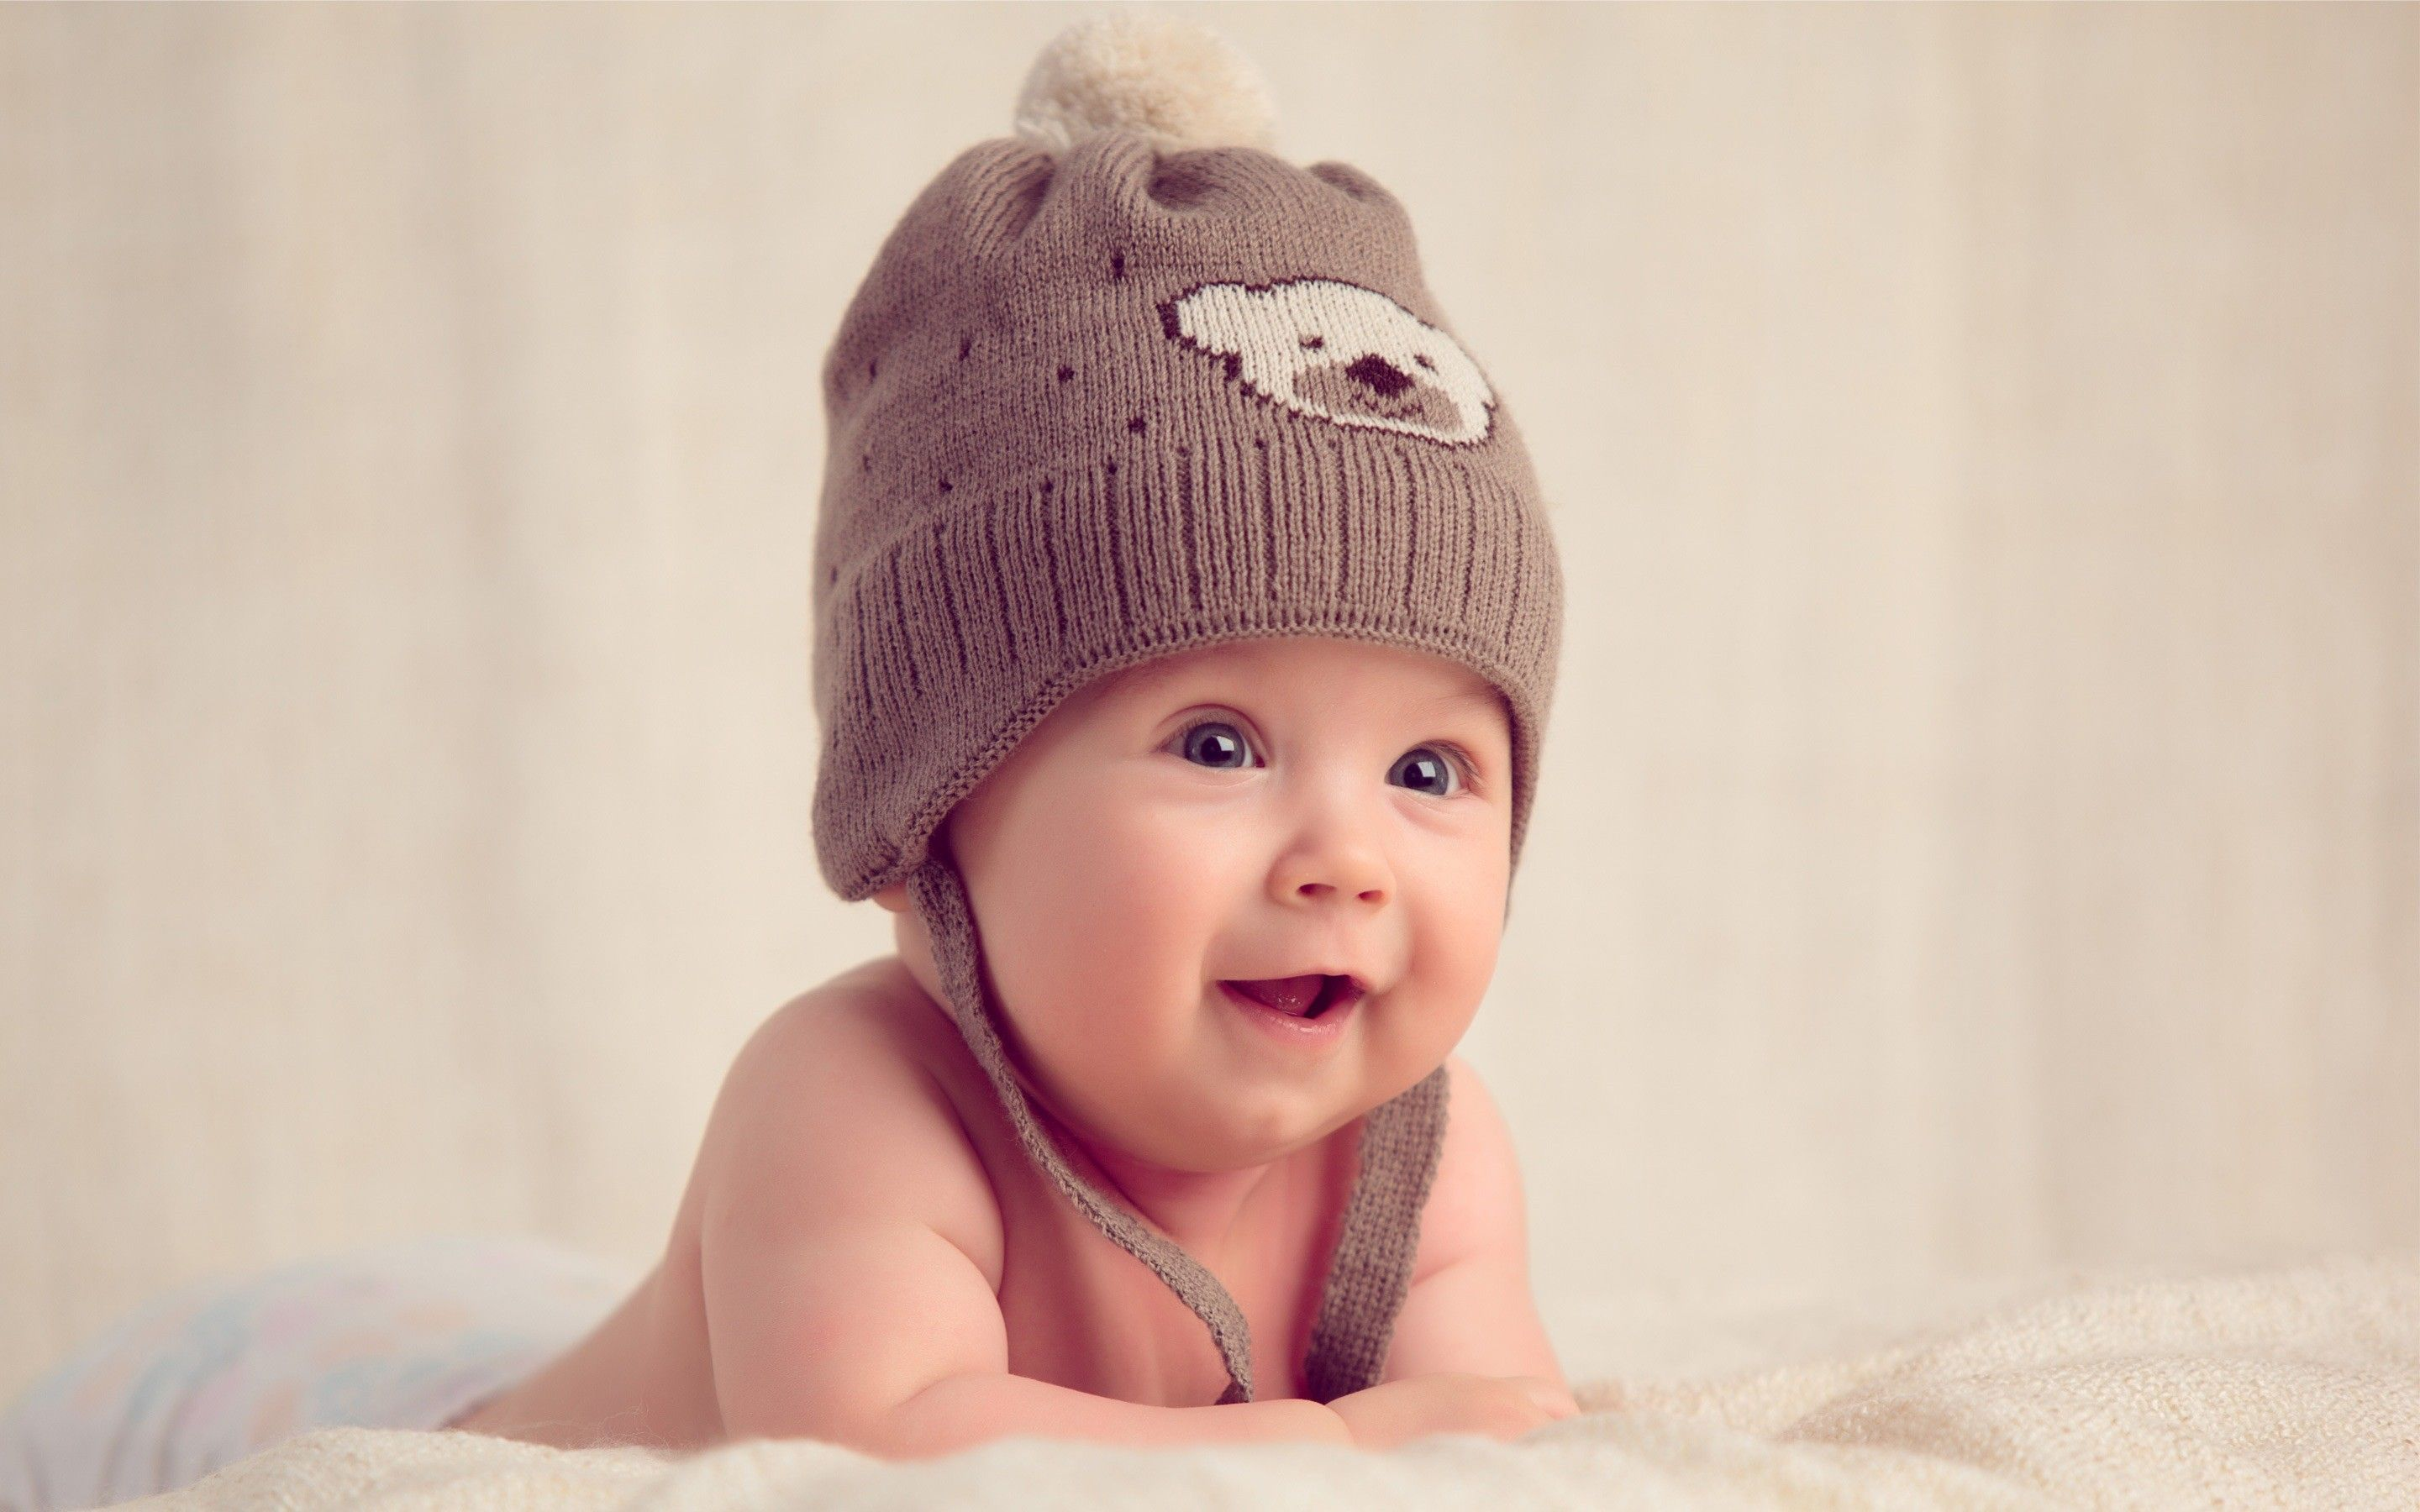 Cute Baby Hat Cap Wallpapers Cute Baby Hat Cap High Quality | HD ...